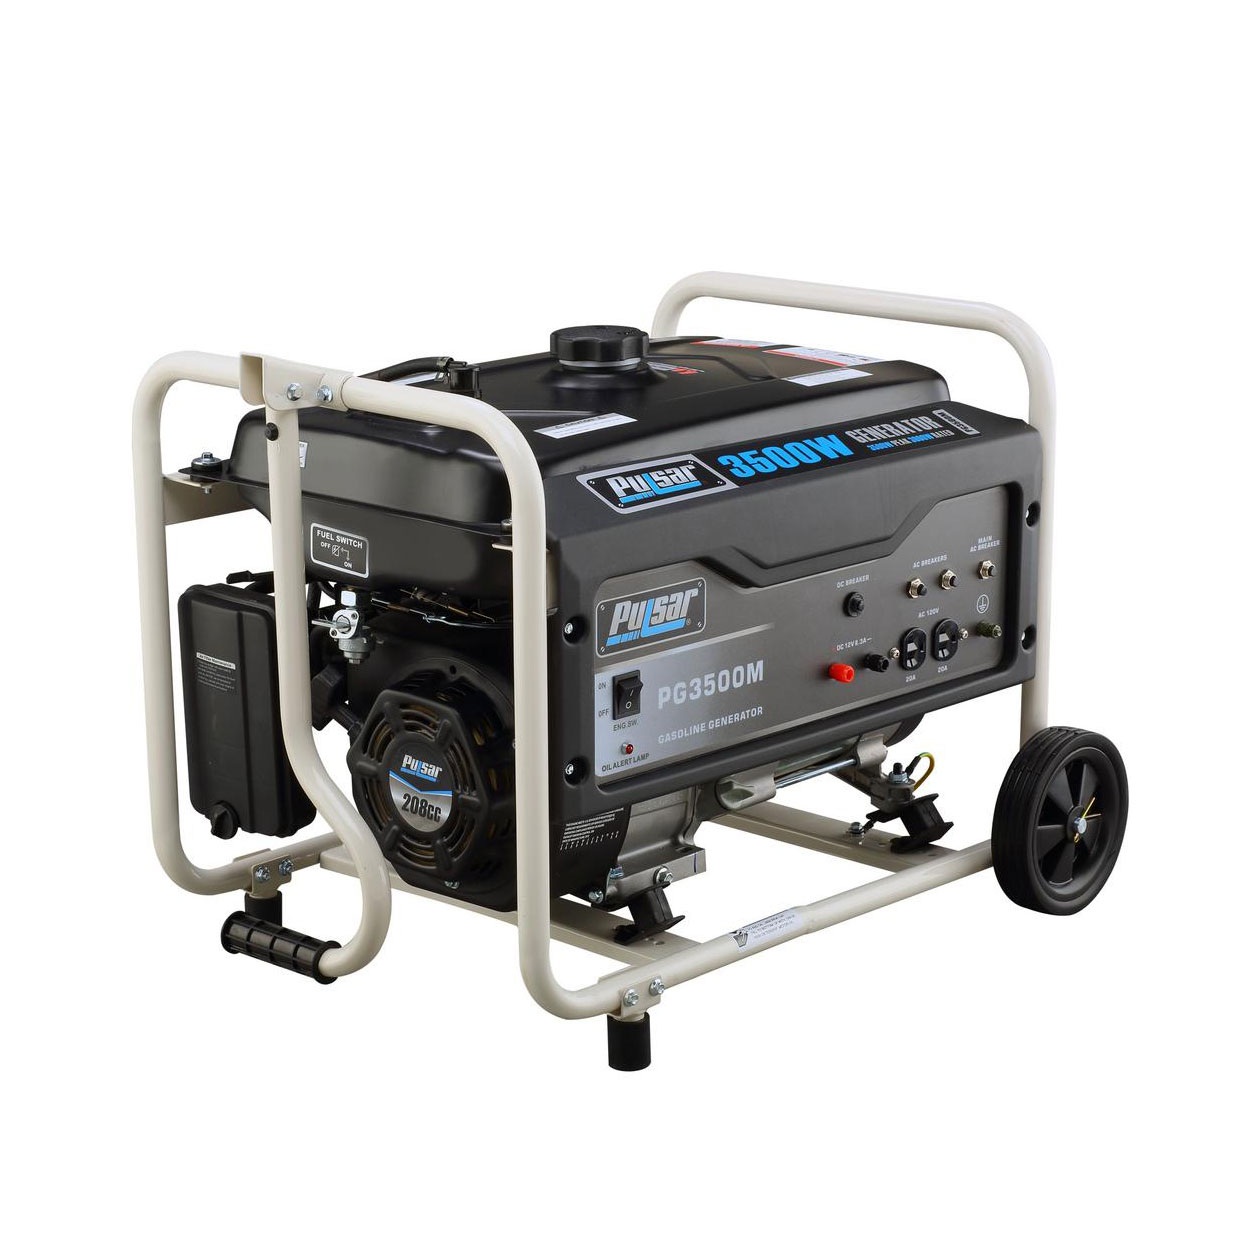 Pulsar GAS 3500W GENERATOR RATED 3000W